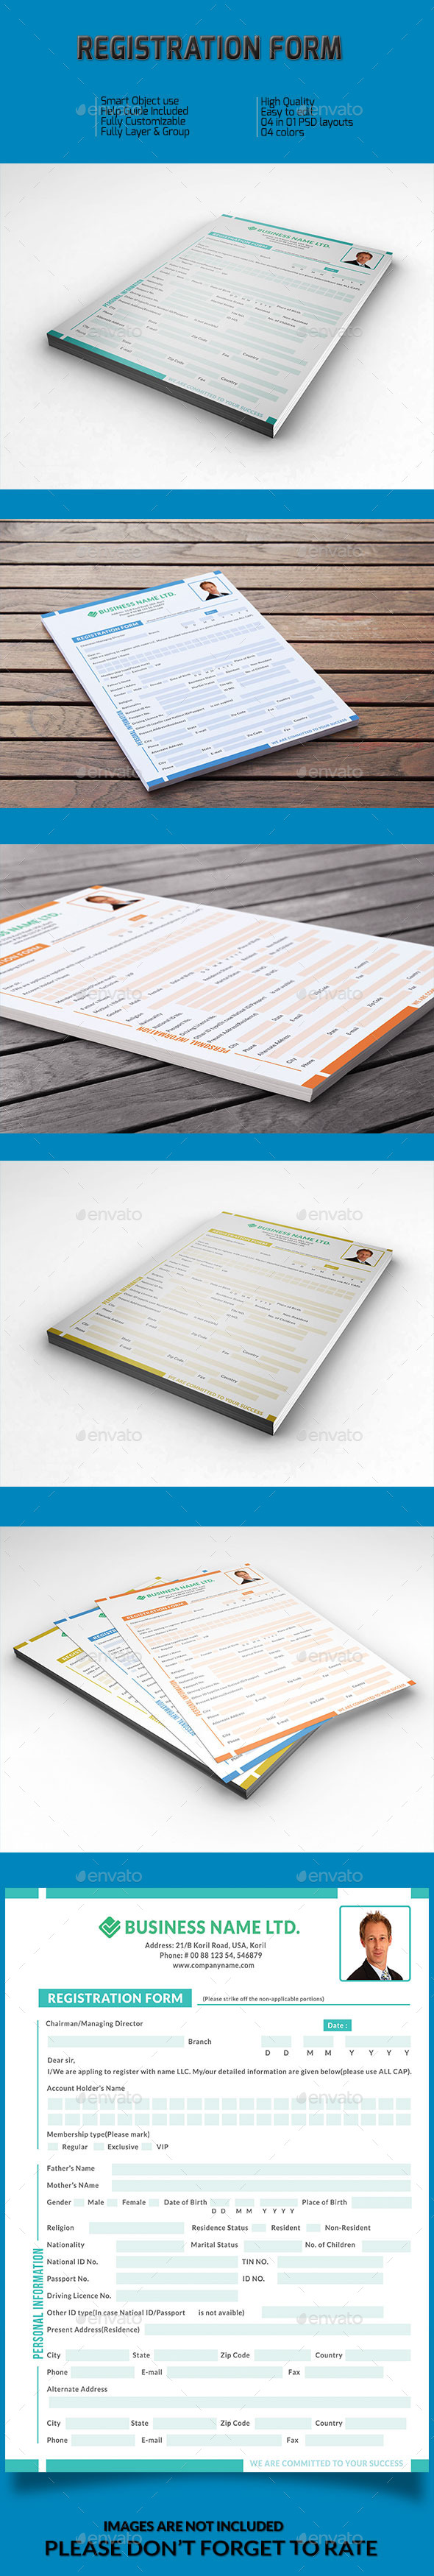 GraphicRiver Registration Form v-01 9984050